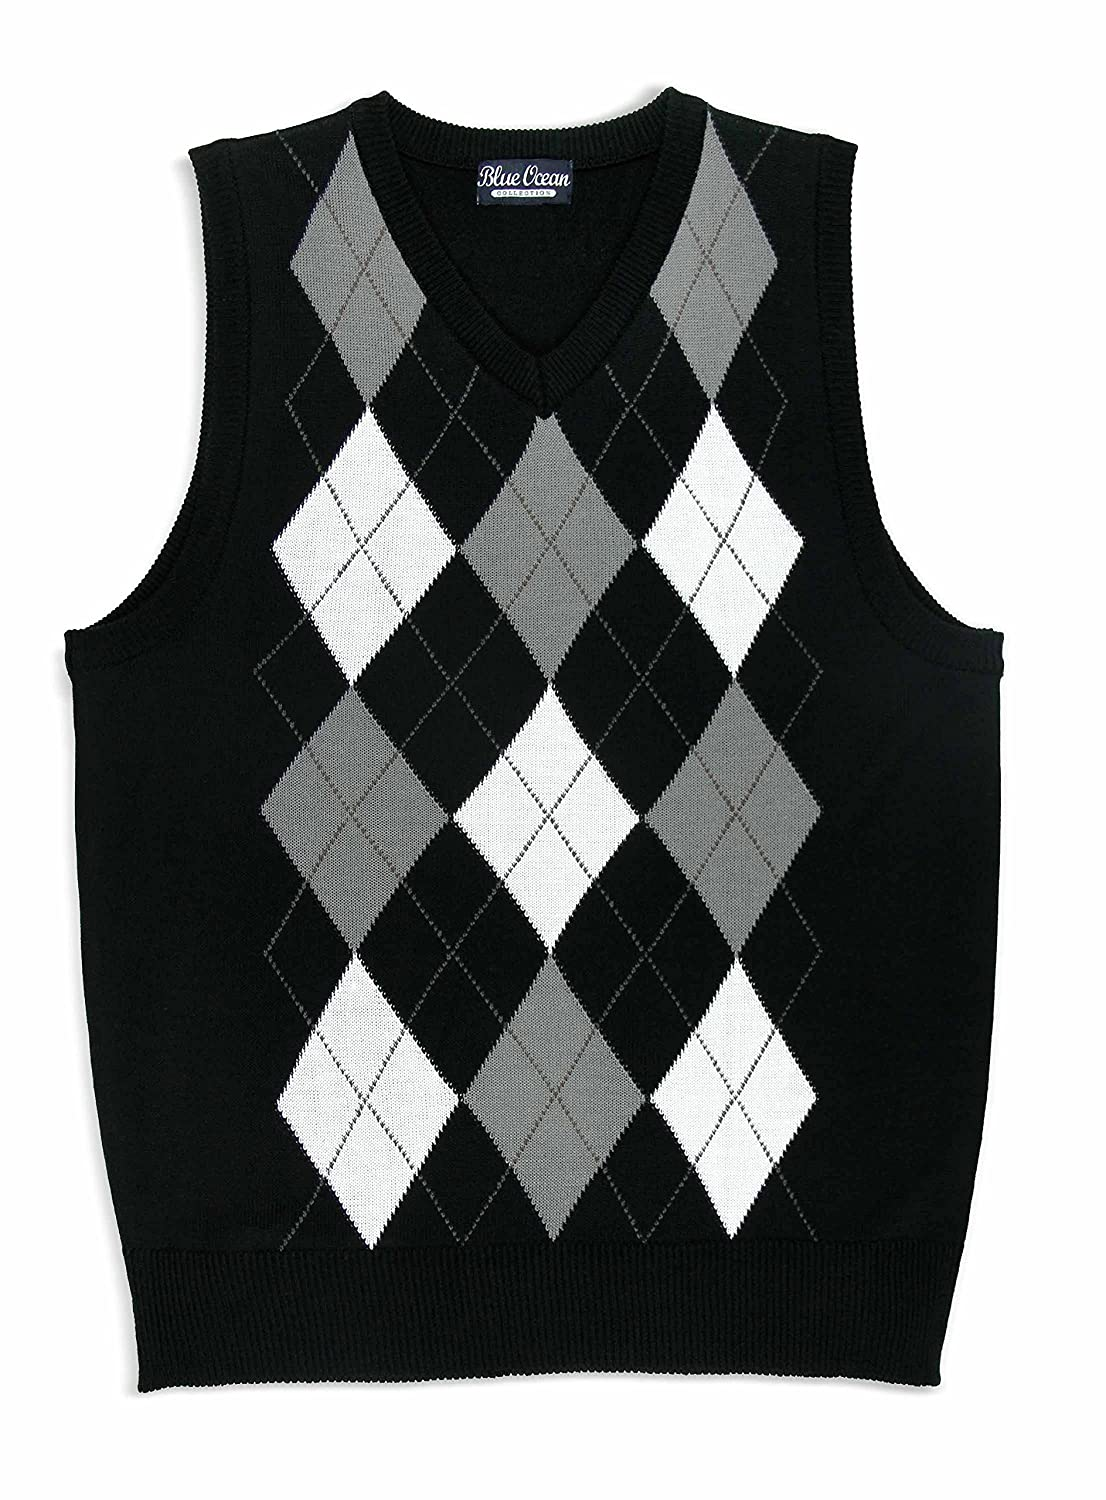 Blue Ocean Kids Argyle Sweater Vest-16/Large SV-255BOYS-Black-16/Large